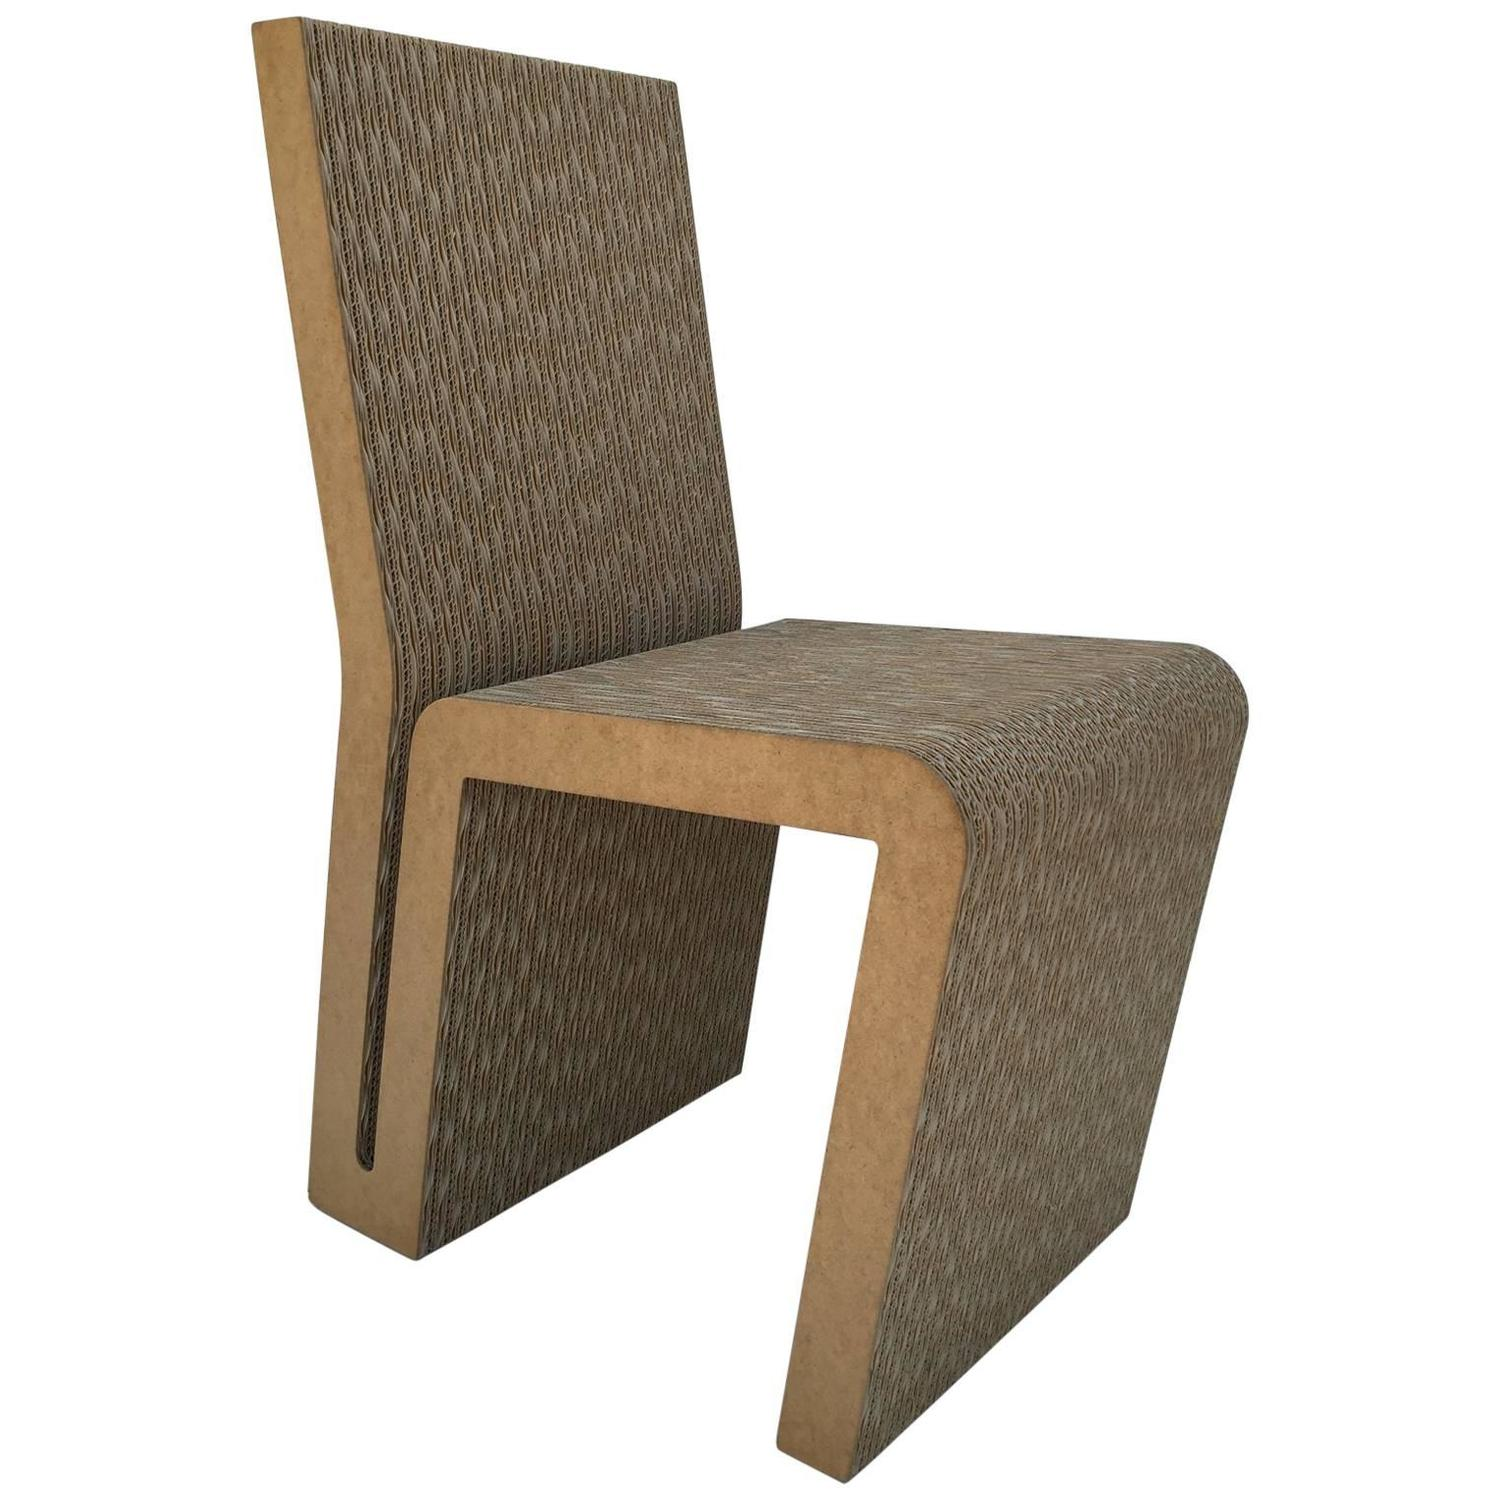 Corrugated Cardboard Furniture Frank Gehry Furniture 38 For Sale At 1stdibs